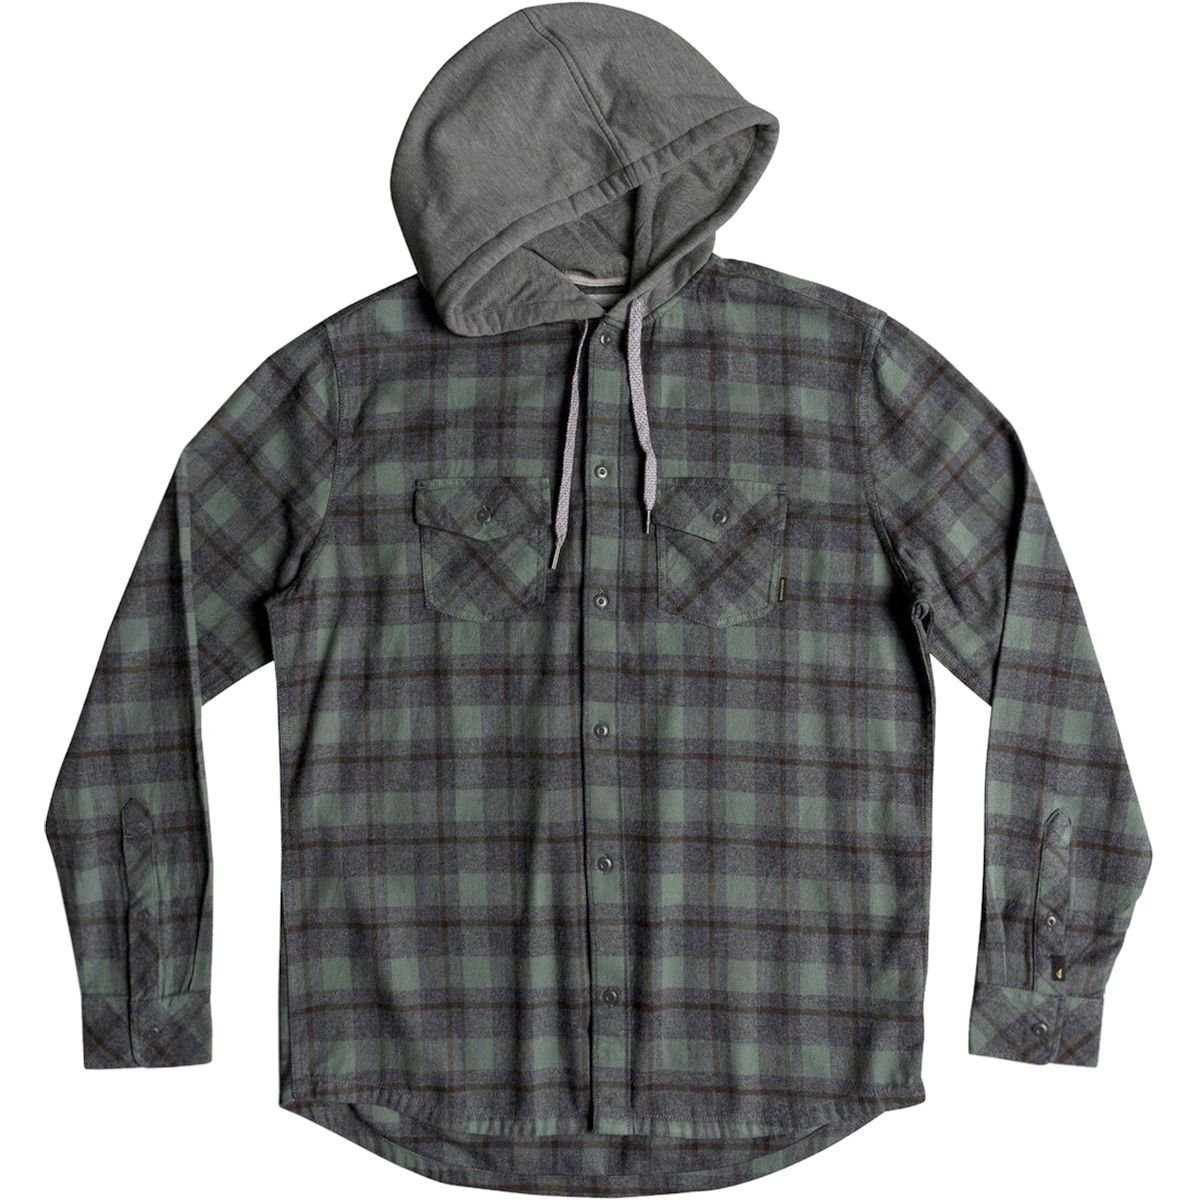 Quiksilver Men's Snap up Hooded Button Down Flannel Shirt, Dark Forest Snap up, XXL